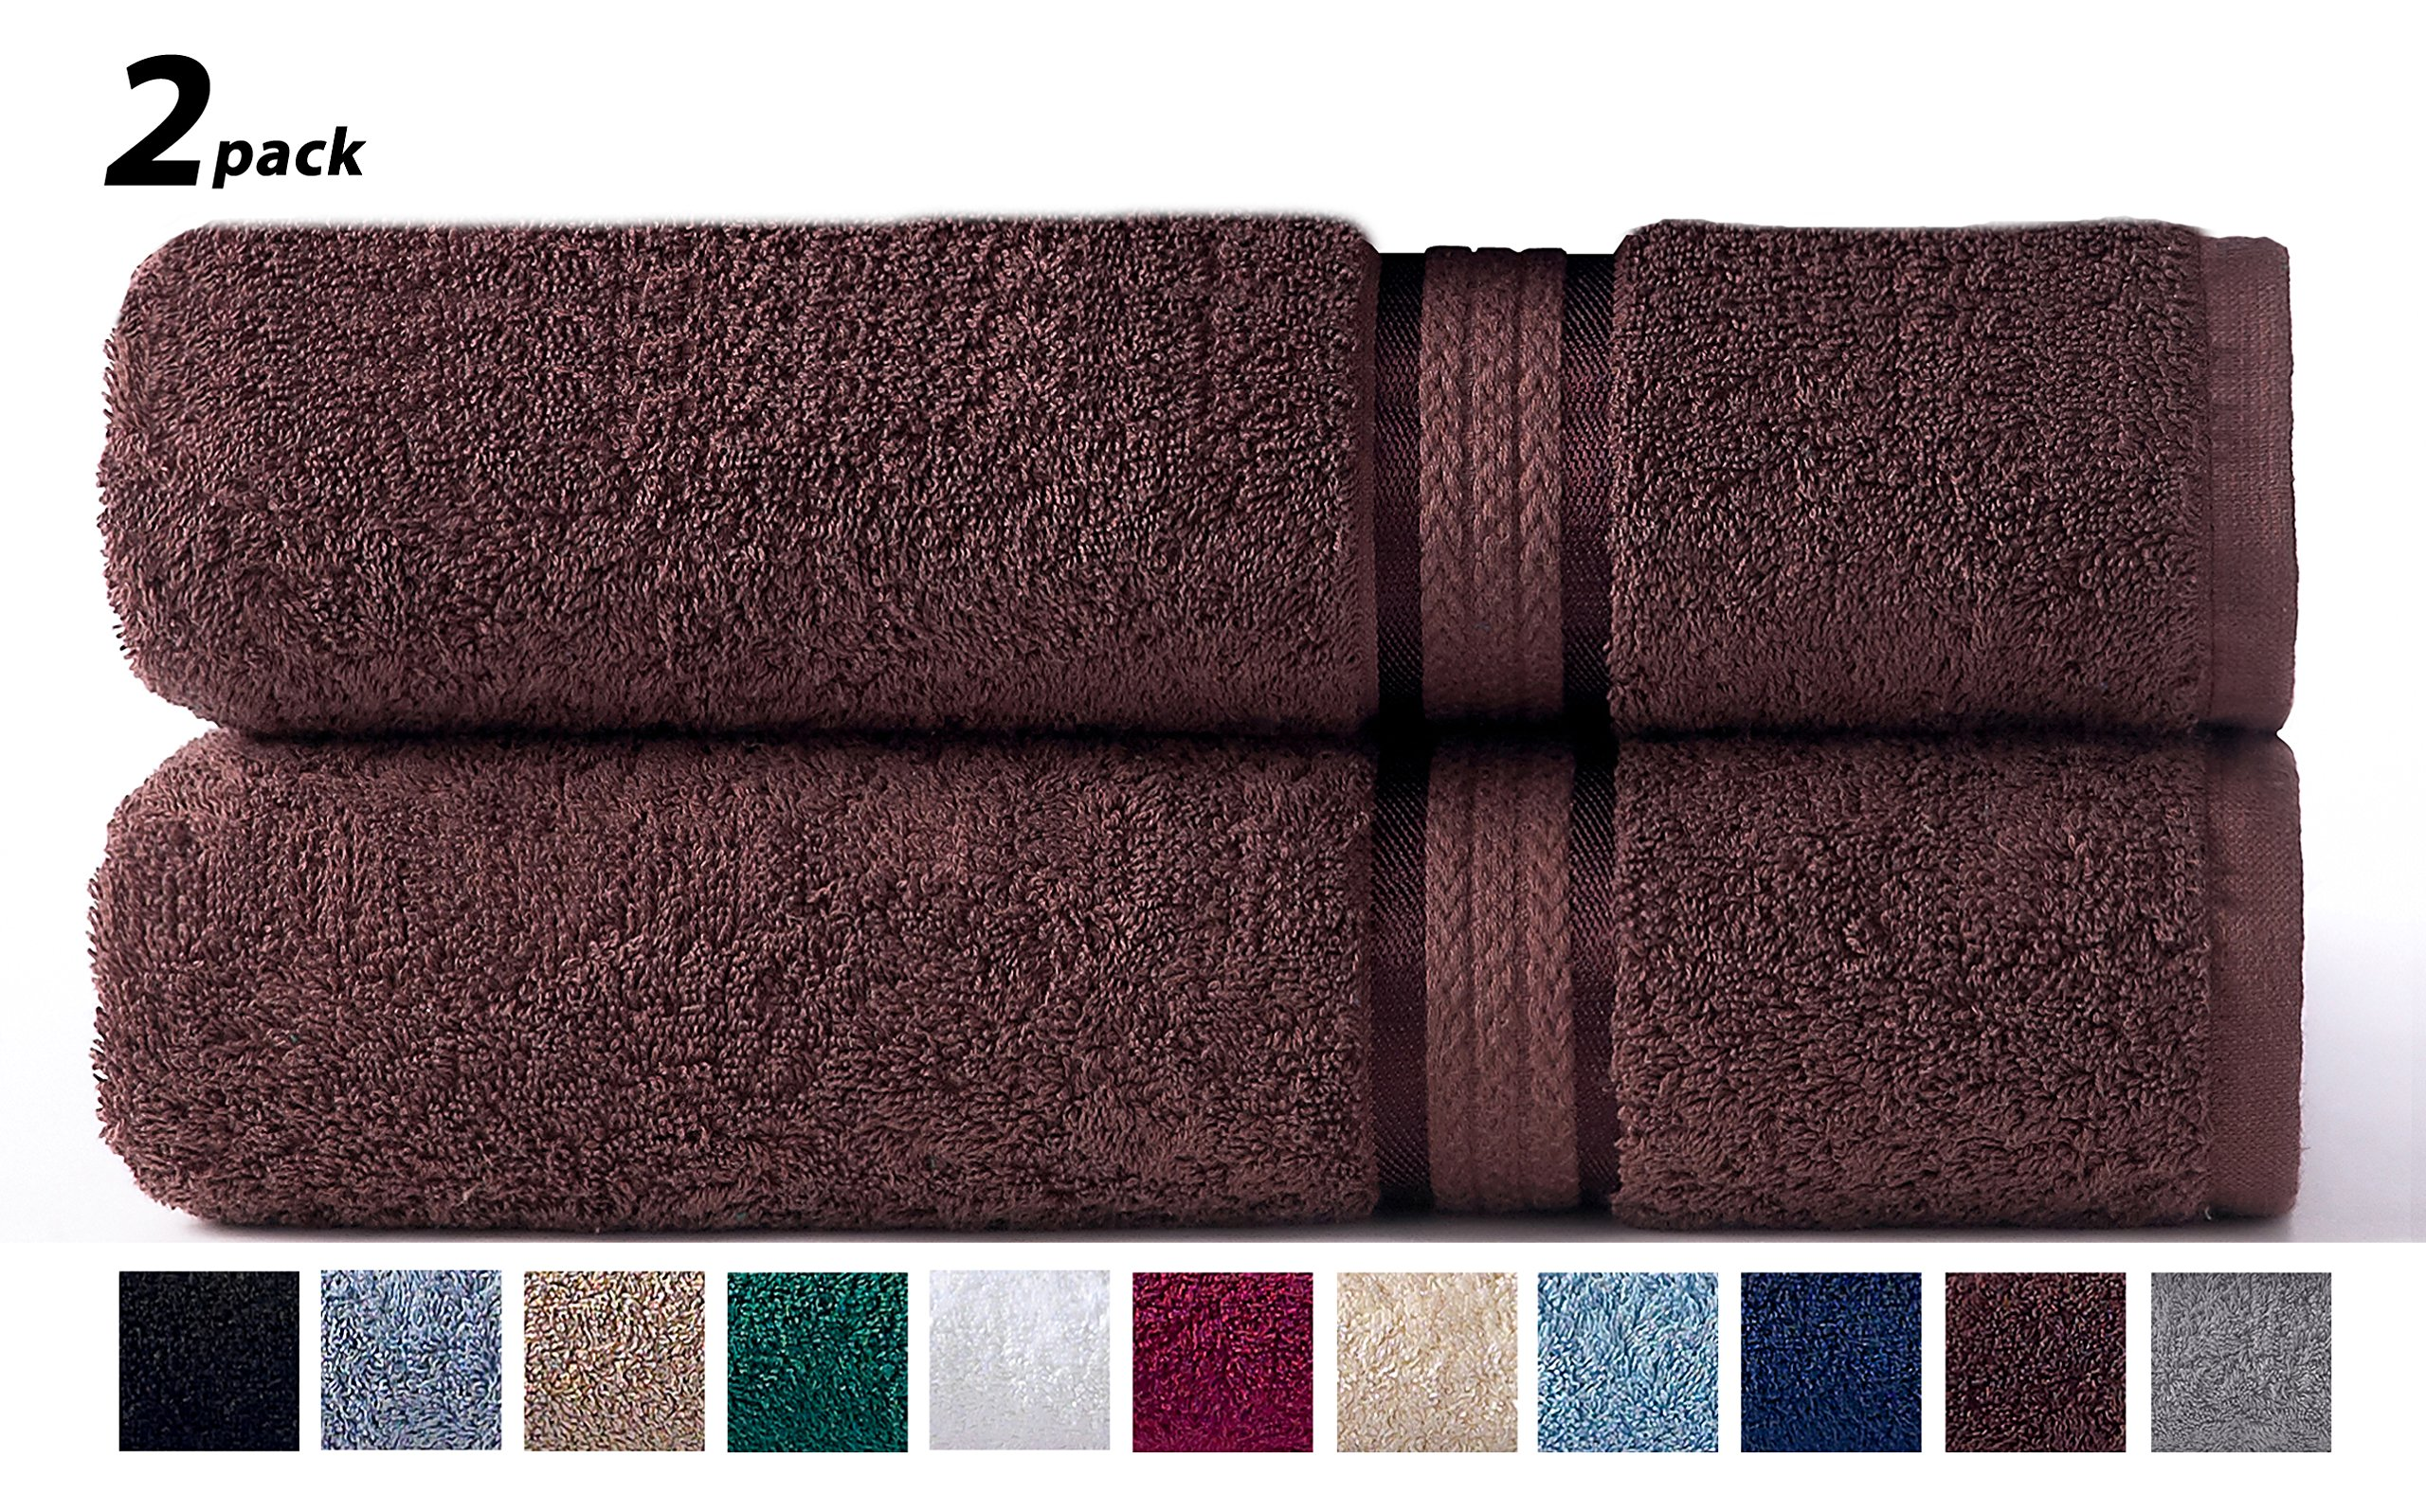 Cotton Craft - 2 Pack Ultra Soft Oversized Extra Large Bath Sheet 35x70 Chocolate - Weighs 33 Ounces - 100% Pure Ringspun Cotton - Luxurious Rayon trim - Ideal for everyday use, Easy care machine wash by Cotton Craft